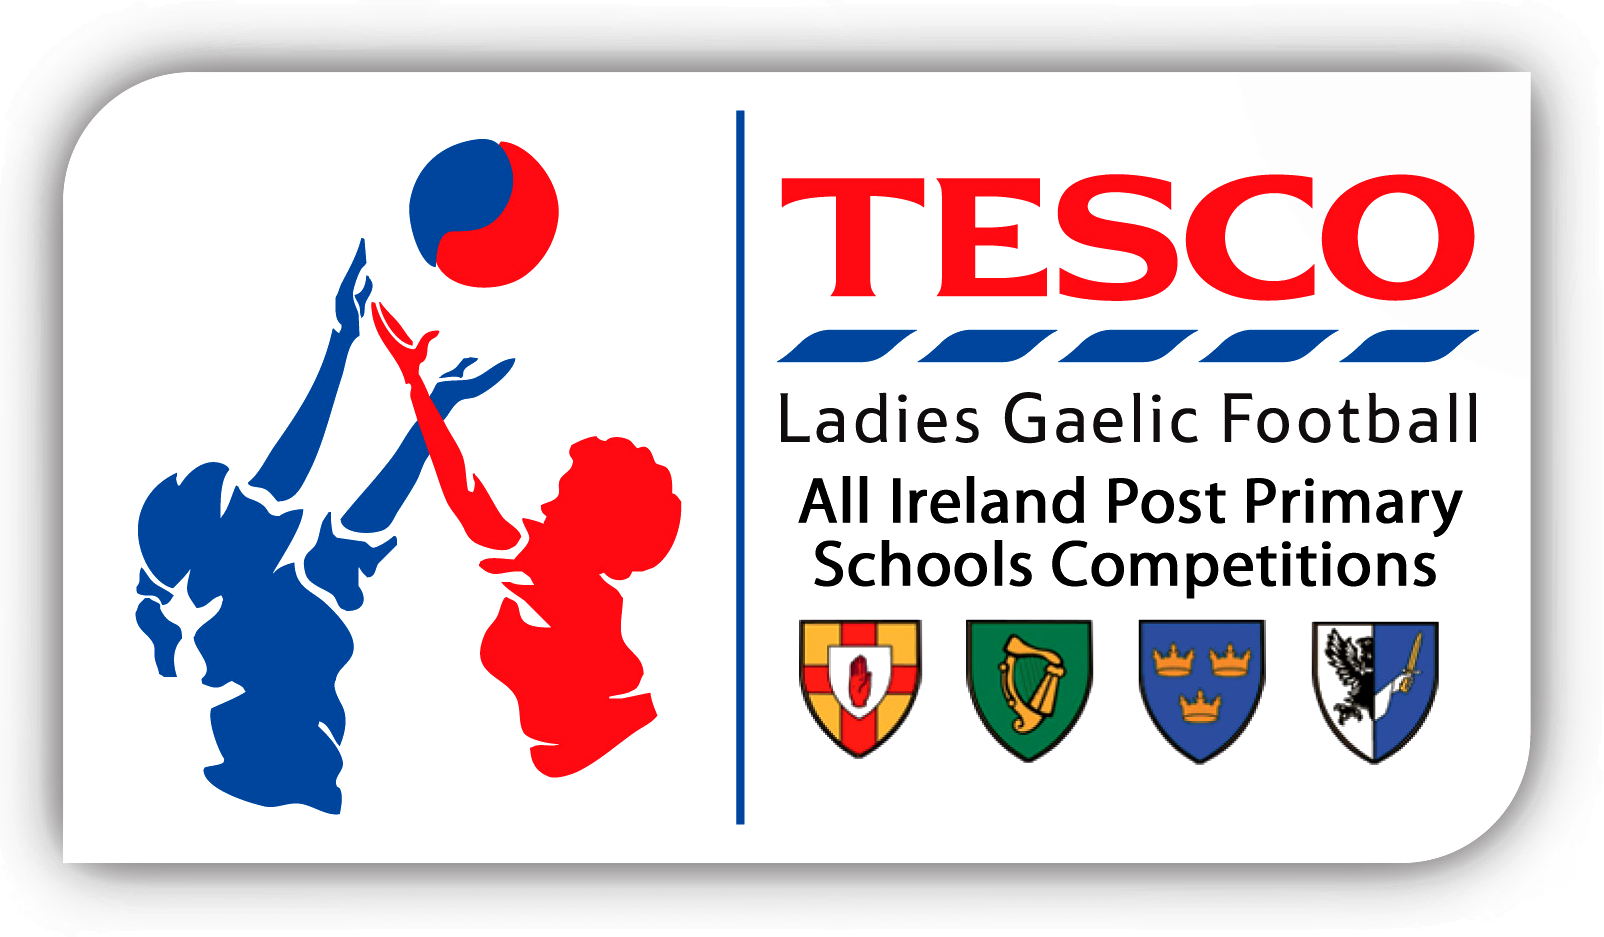 Tesco Ladies Gaelic Football